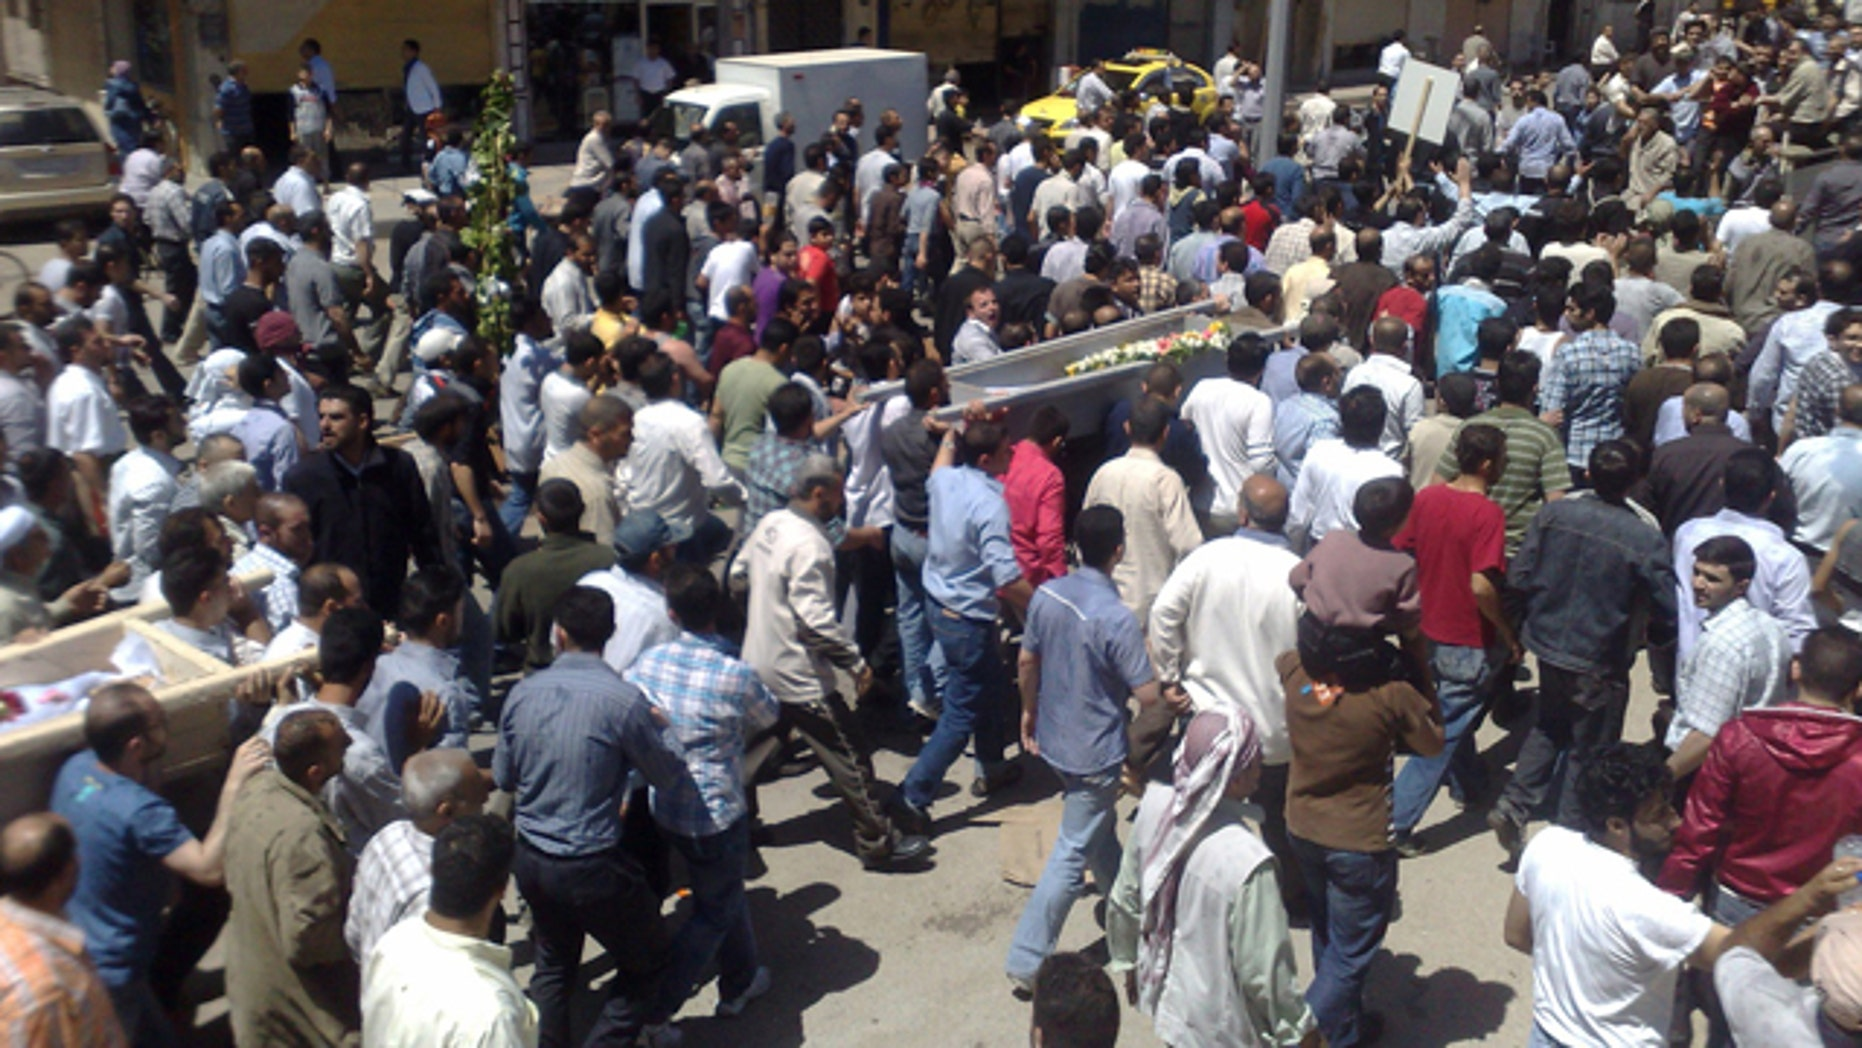 May 21: In this citizen journalism image made on a mobile phone and acquired by the AP, Syrian anti-government supporters carry the coffins of people whom they say were killed in the government crackdown, in the central city of Homs, Syria.